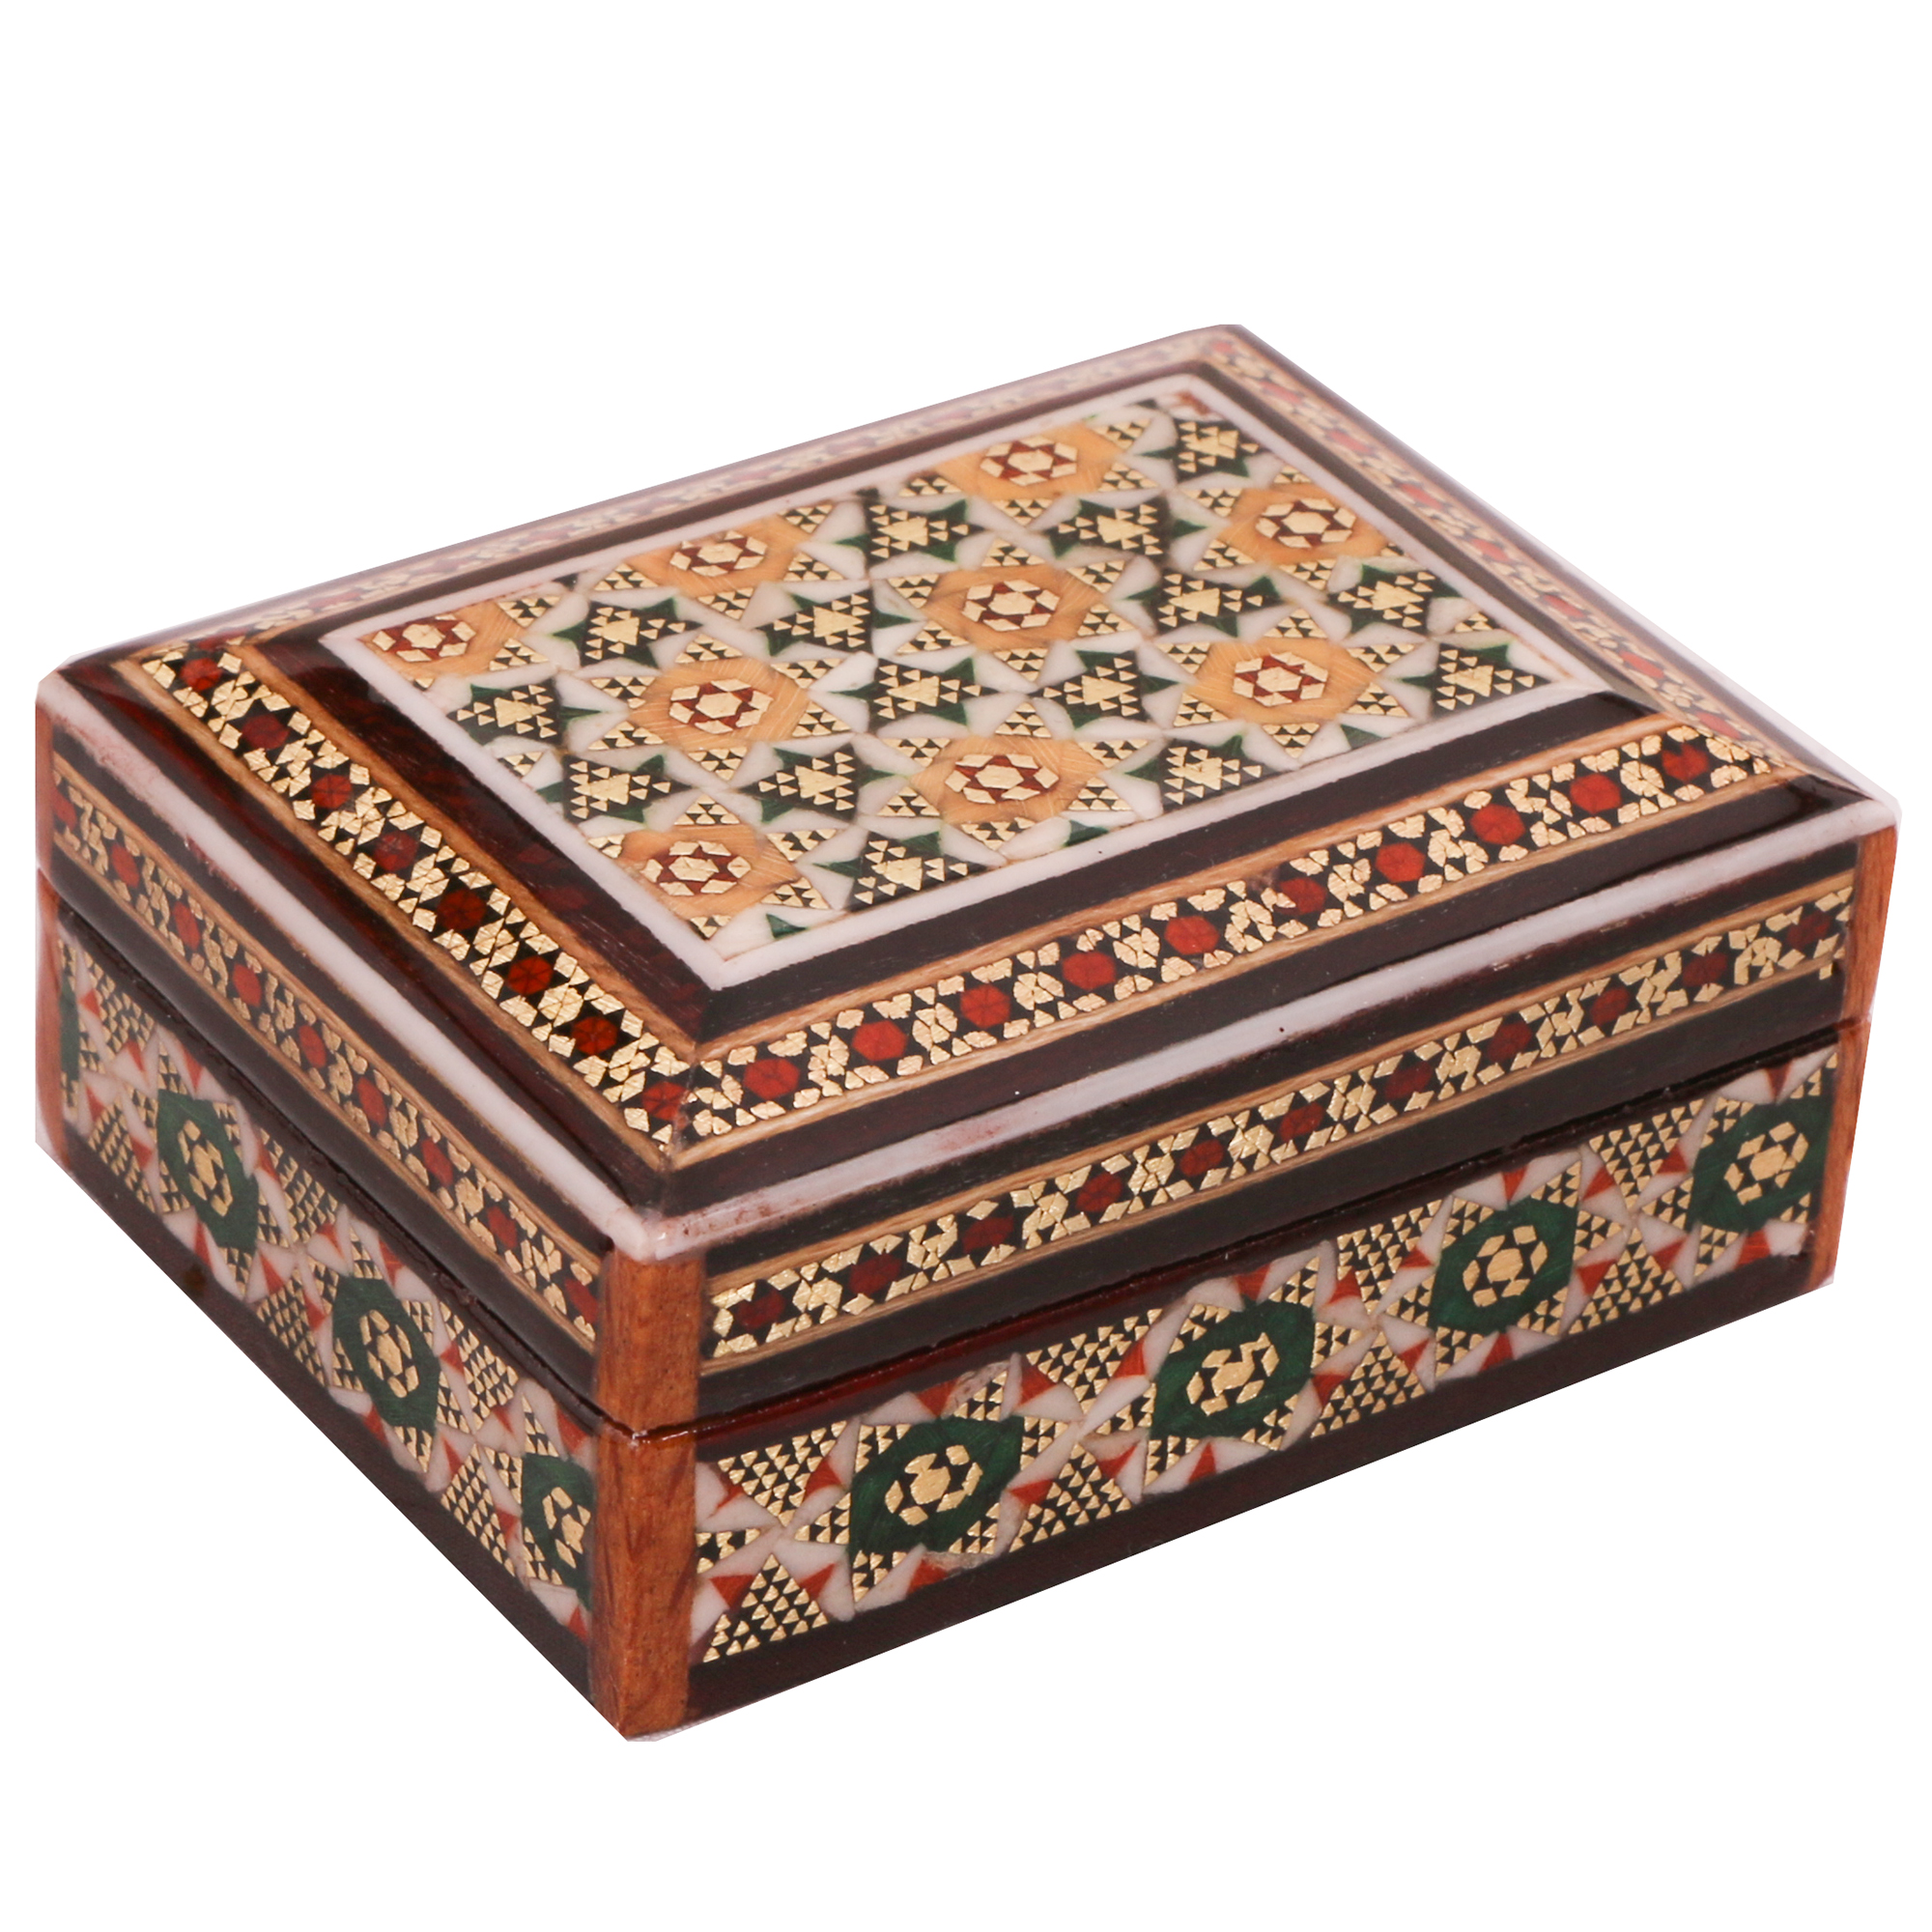 Inlay handicraft casket, code 916